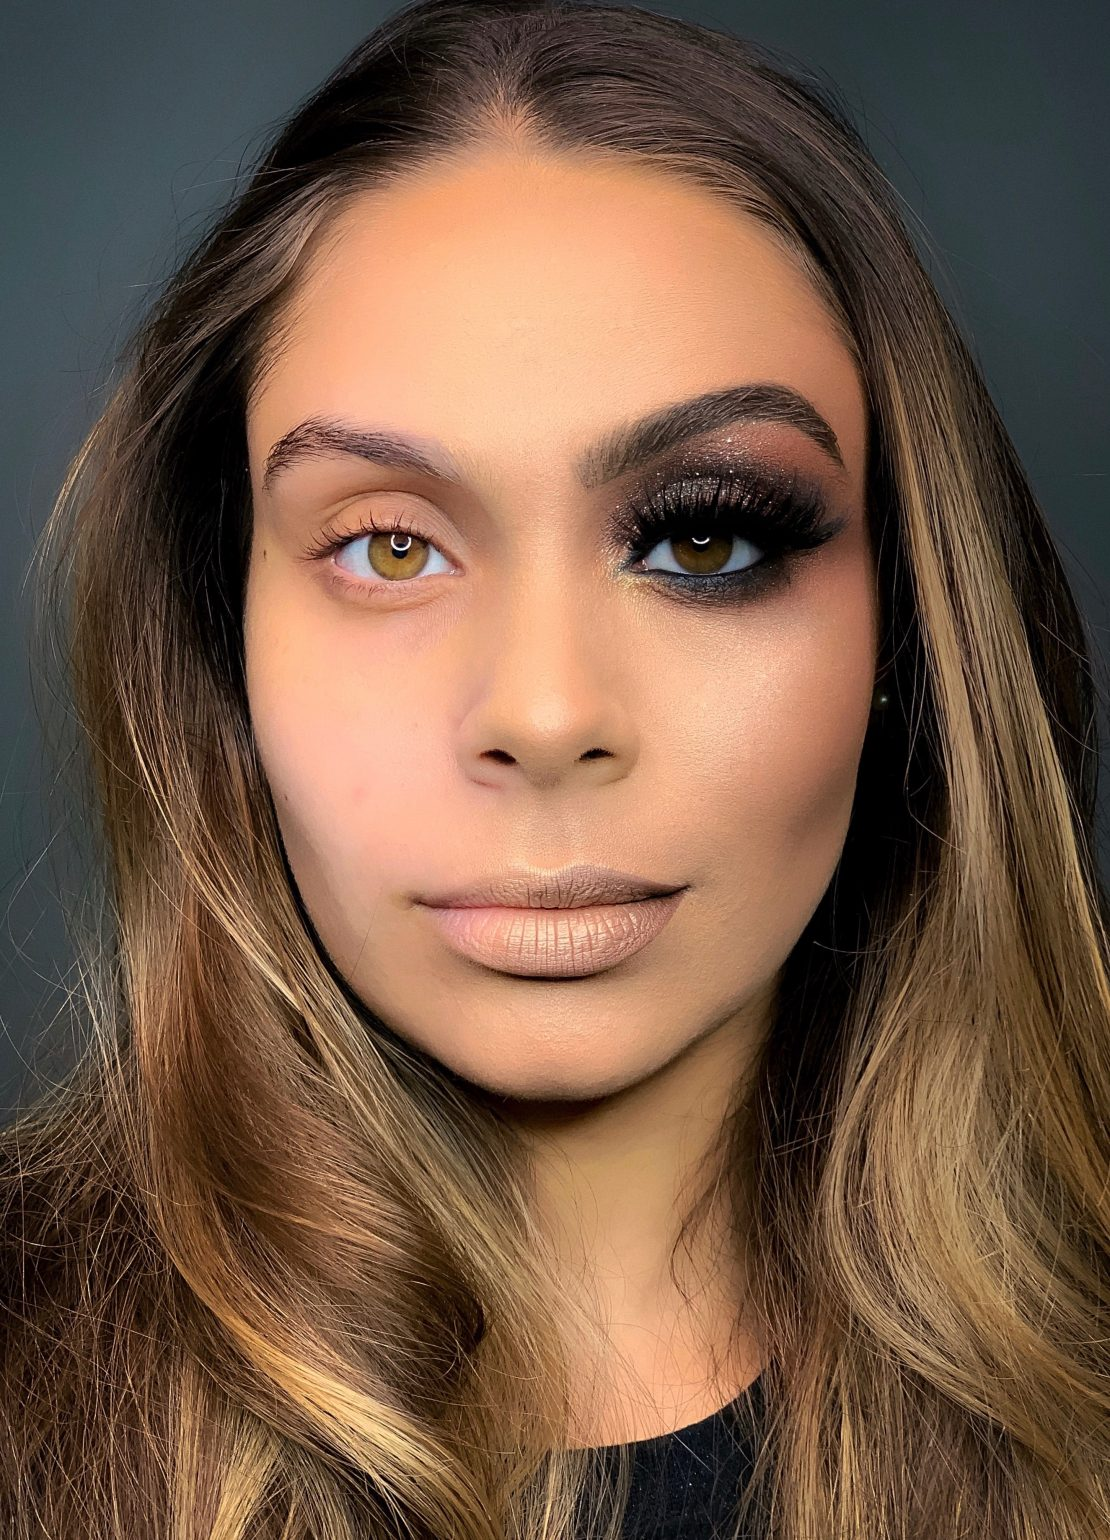 Makeup Artistry Skills You'll Learn at Health and Style Institute | Contact us today at 1-844-94-STYLE for more information on our makeup artistry program.